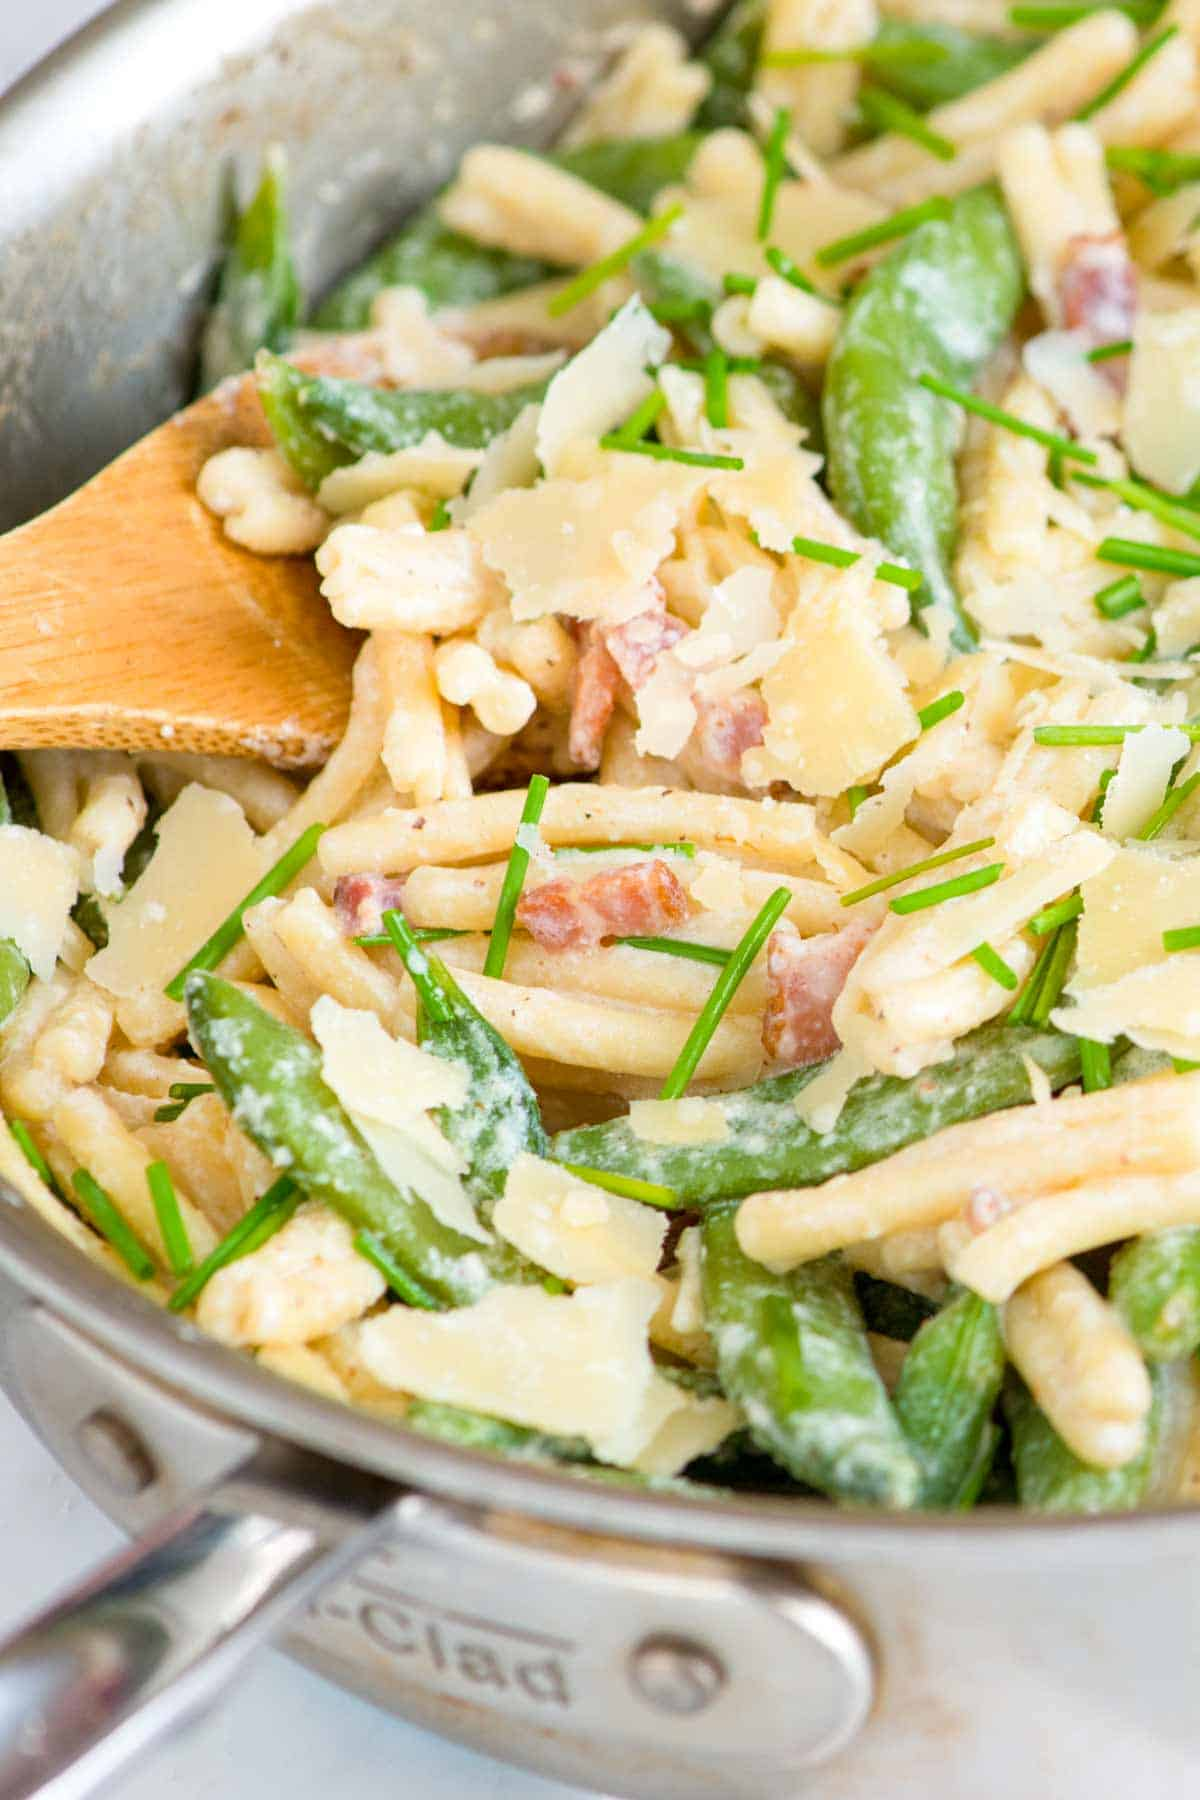 How to Make Creamy Yogurt Pasta with Bacon